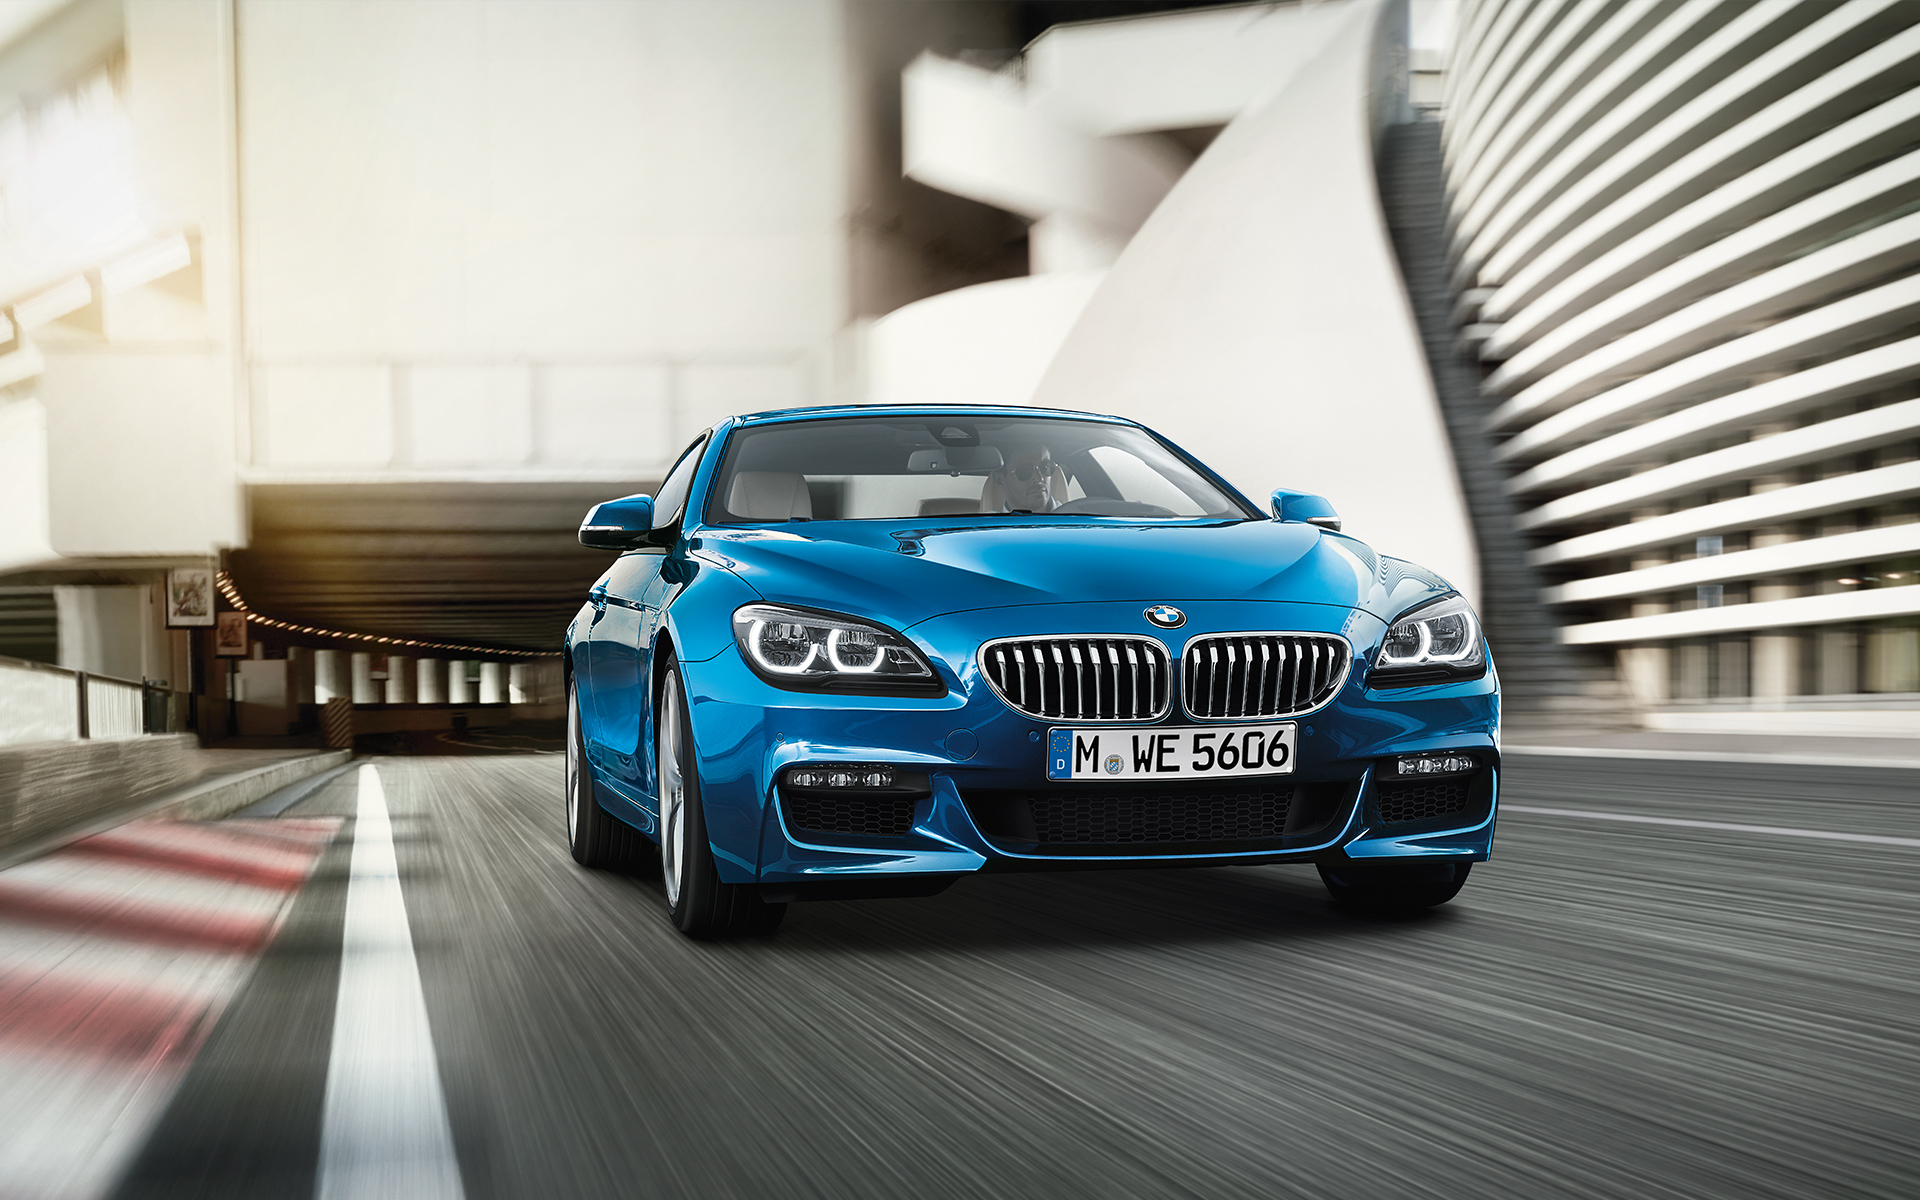 BMW Serie 6 Coupé, Vehículos exclusivos.